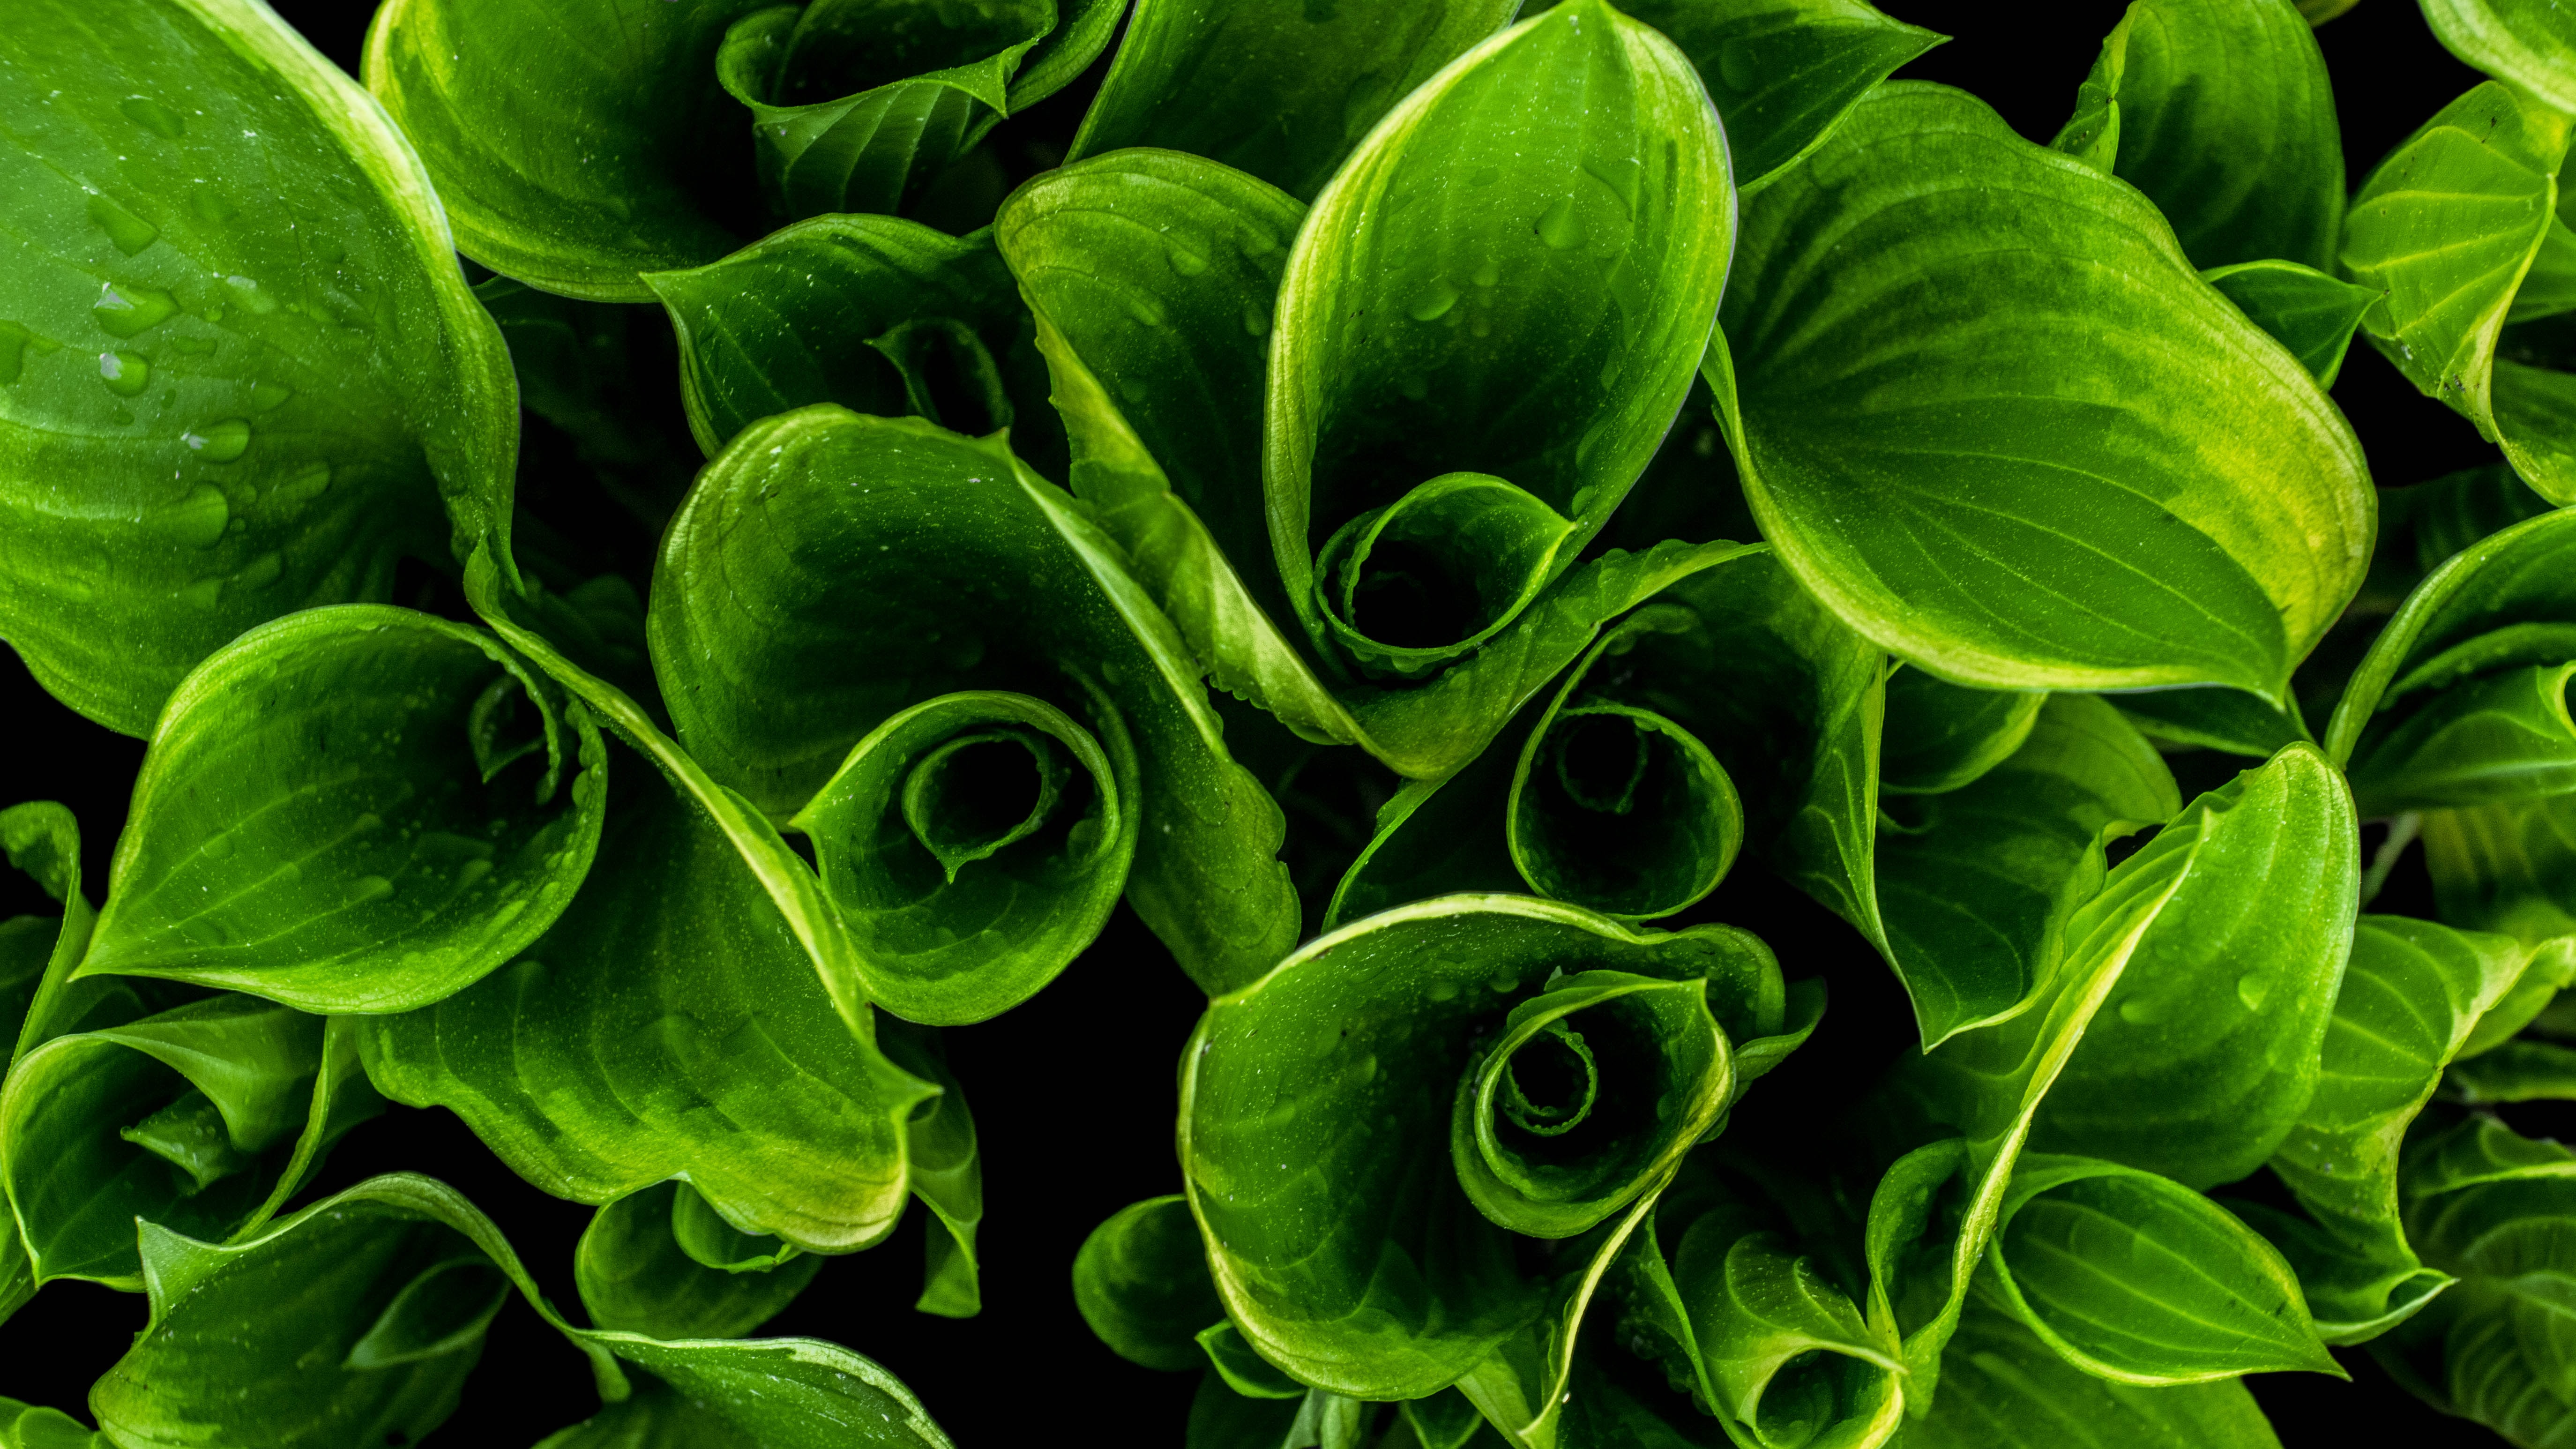 closeup photo of green leafed plants